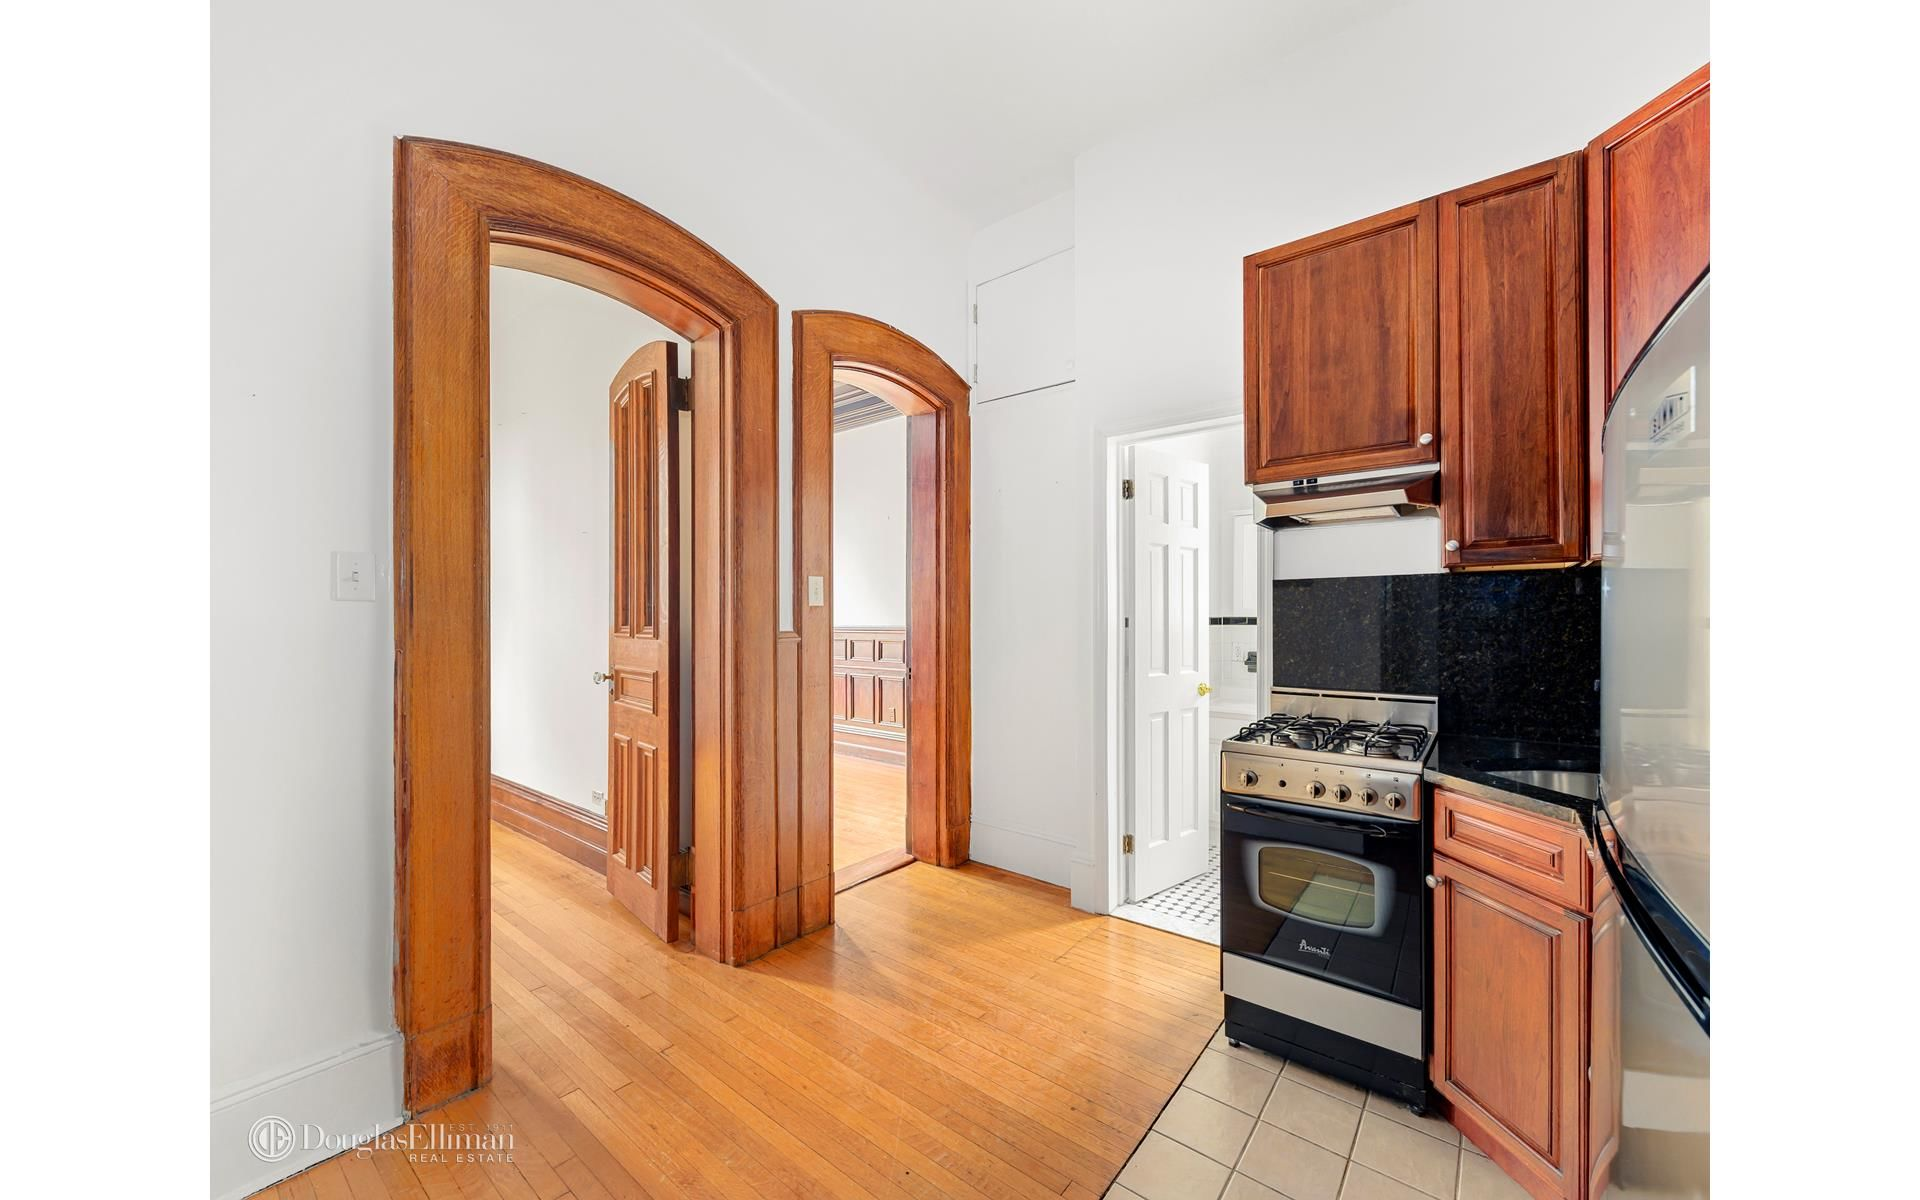 150 Columbia Hts, APT 4F Photo 1 - ELLIMAN-3729568